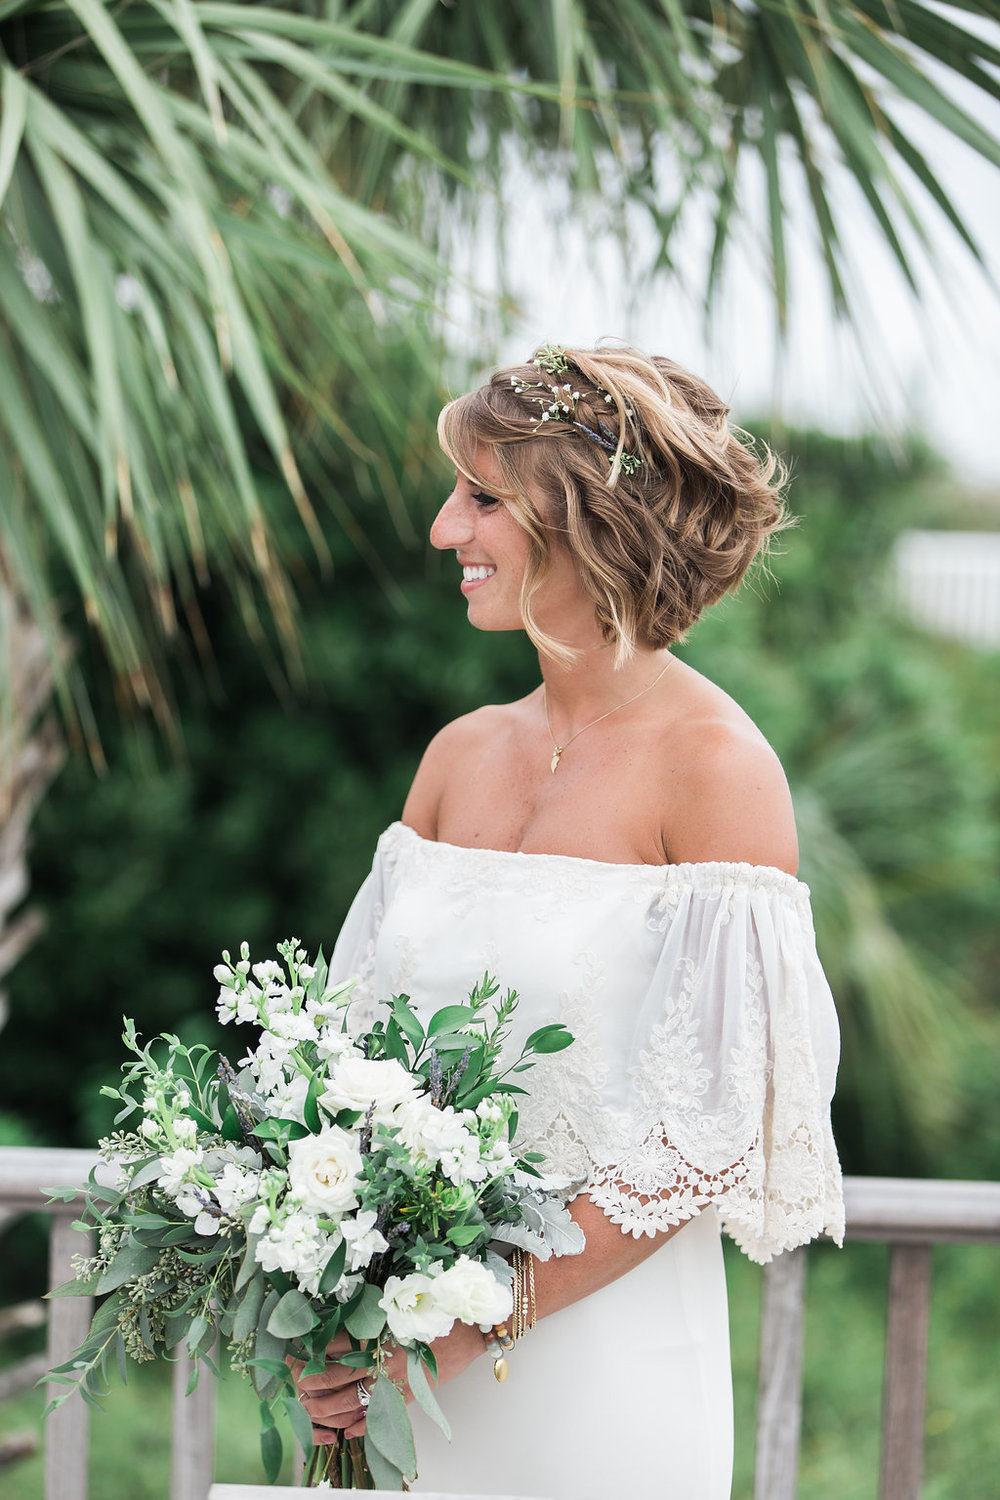 stacey-and-tj-wedding-apartment-b-photography-ivory-and-beau-bridal-boutique-savannah-wedding-dresses-daughters-of-simone-lu-boho-bride-boho-wedding-savannah-boho-wedding-savannah-weddings-savannah-bridal-gowns-savannah-wedding-18.jpg